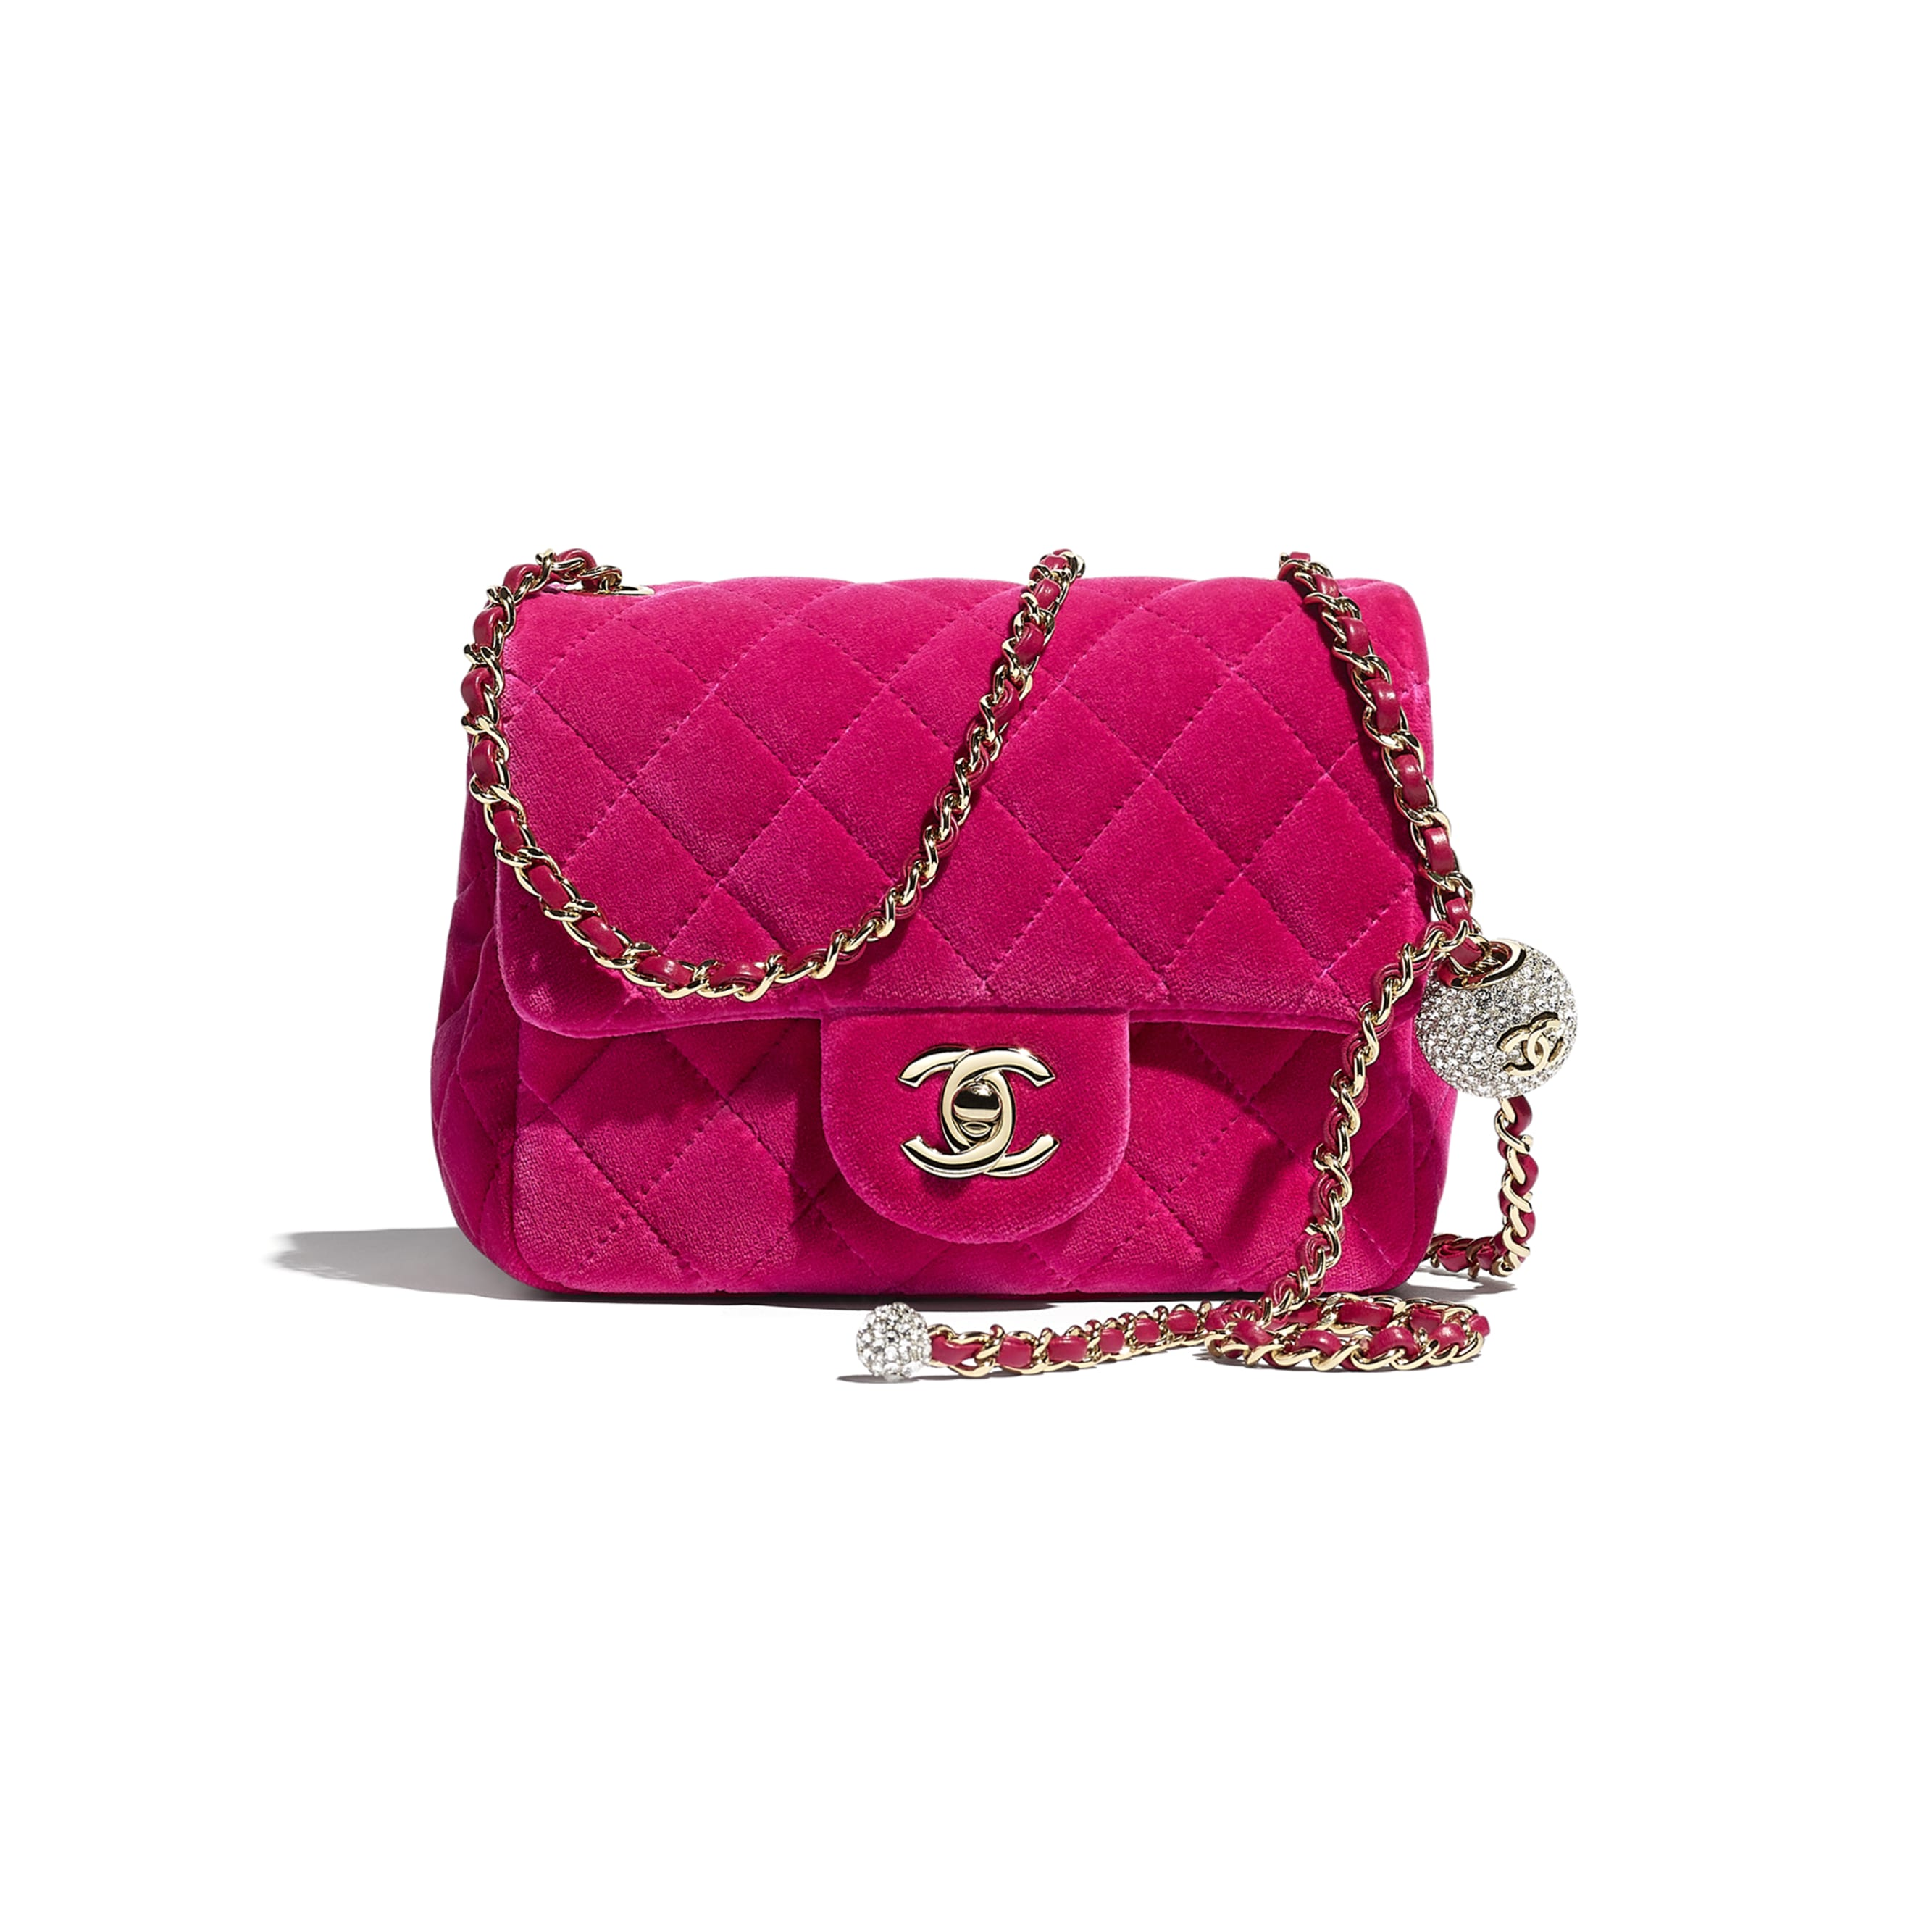 Flap Bag - Fuchsia - Velvet, Diamanté & Gold-Tone Metal - CHANEL - Default view - see standard sized version